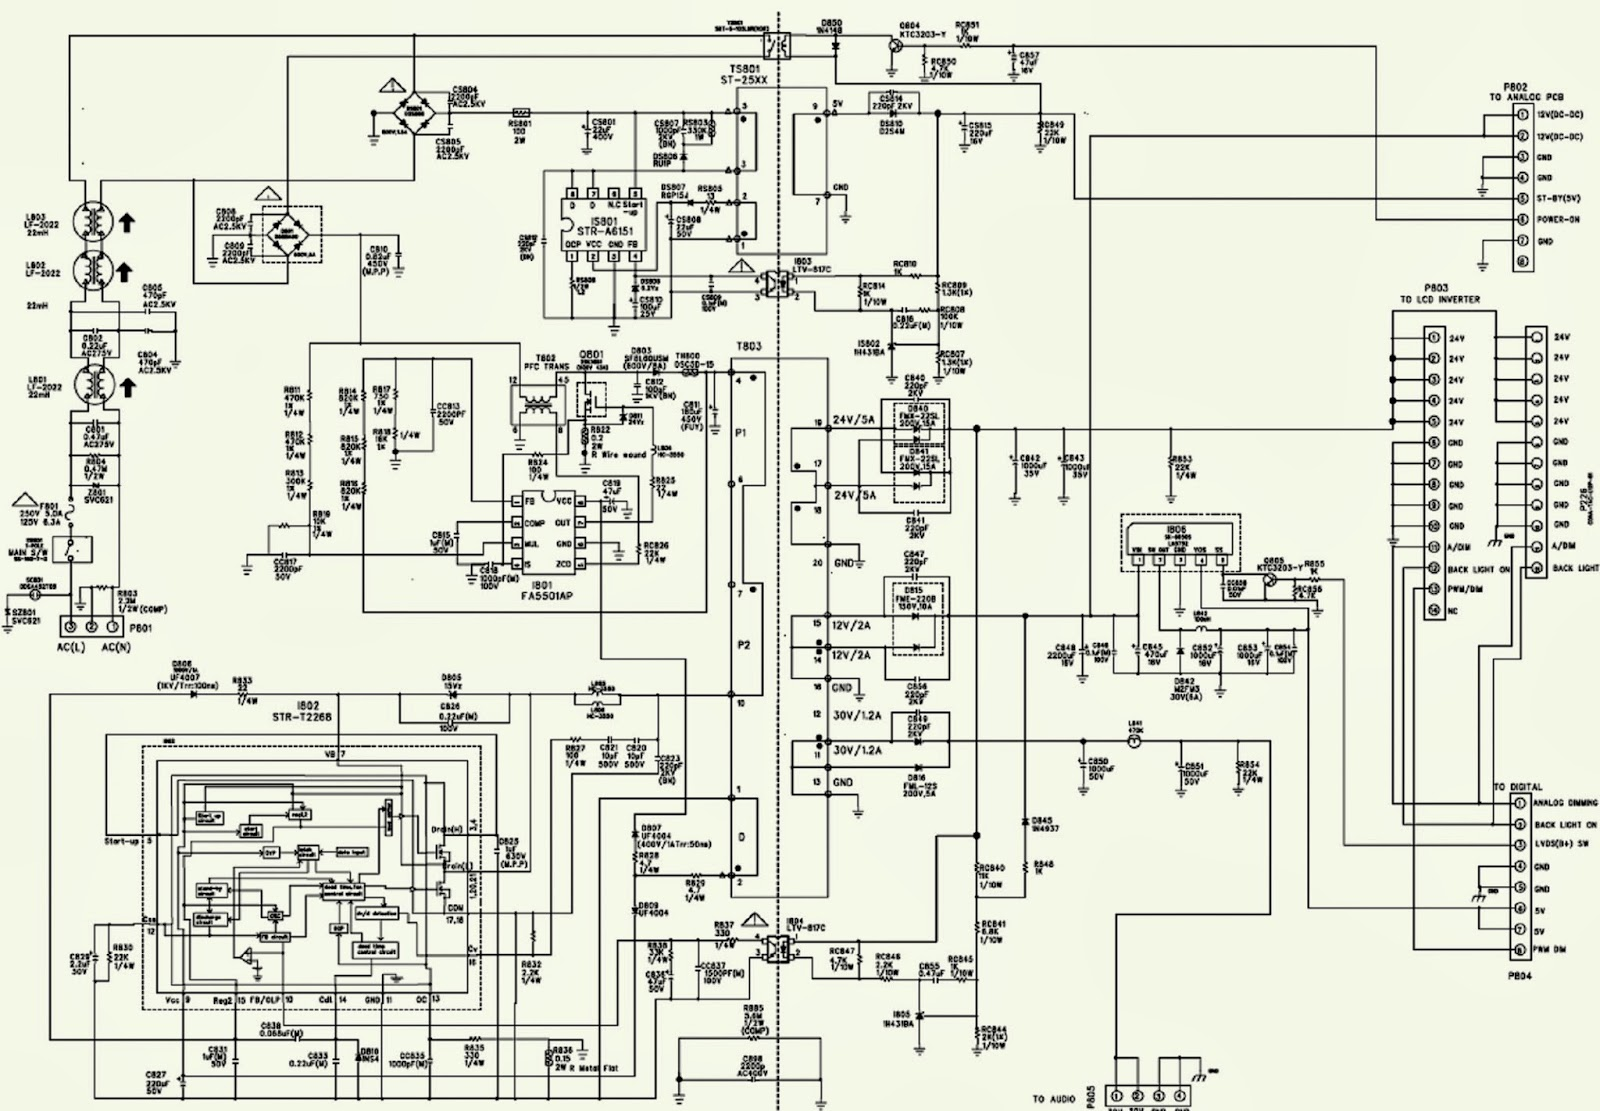 Schematic Circuit Diagram Str | #1 Wiring Diagram Source